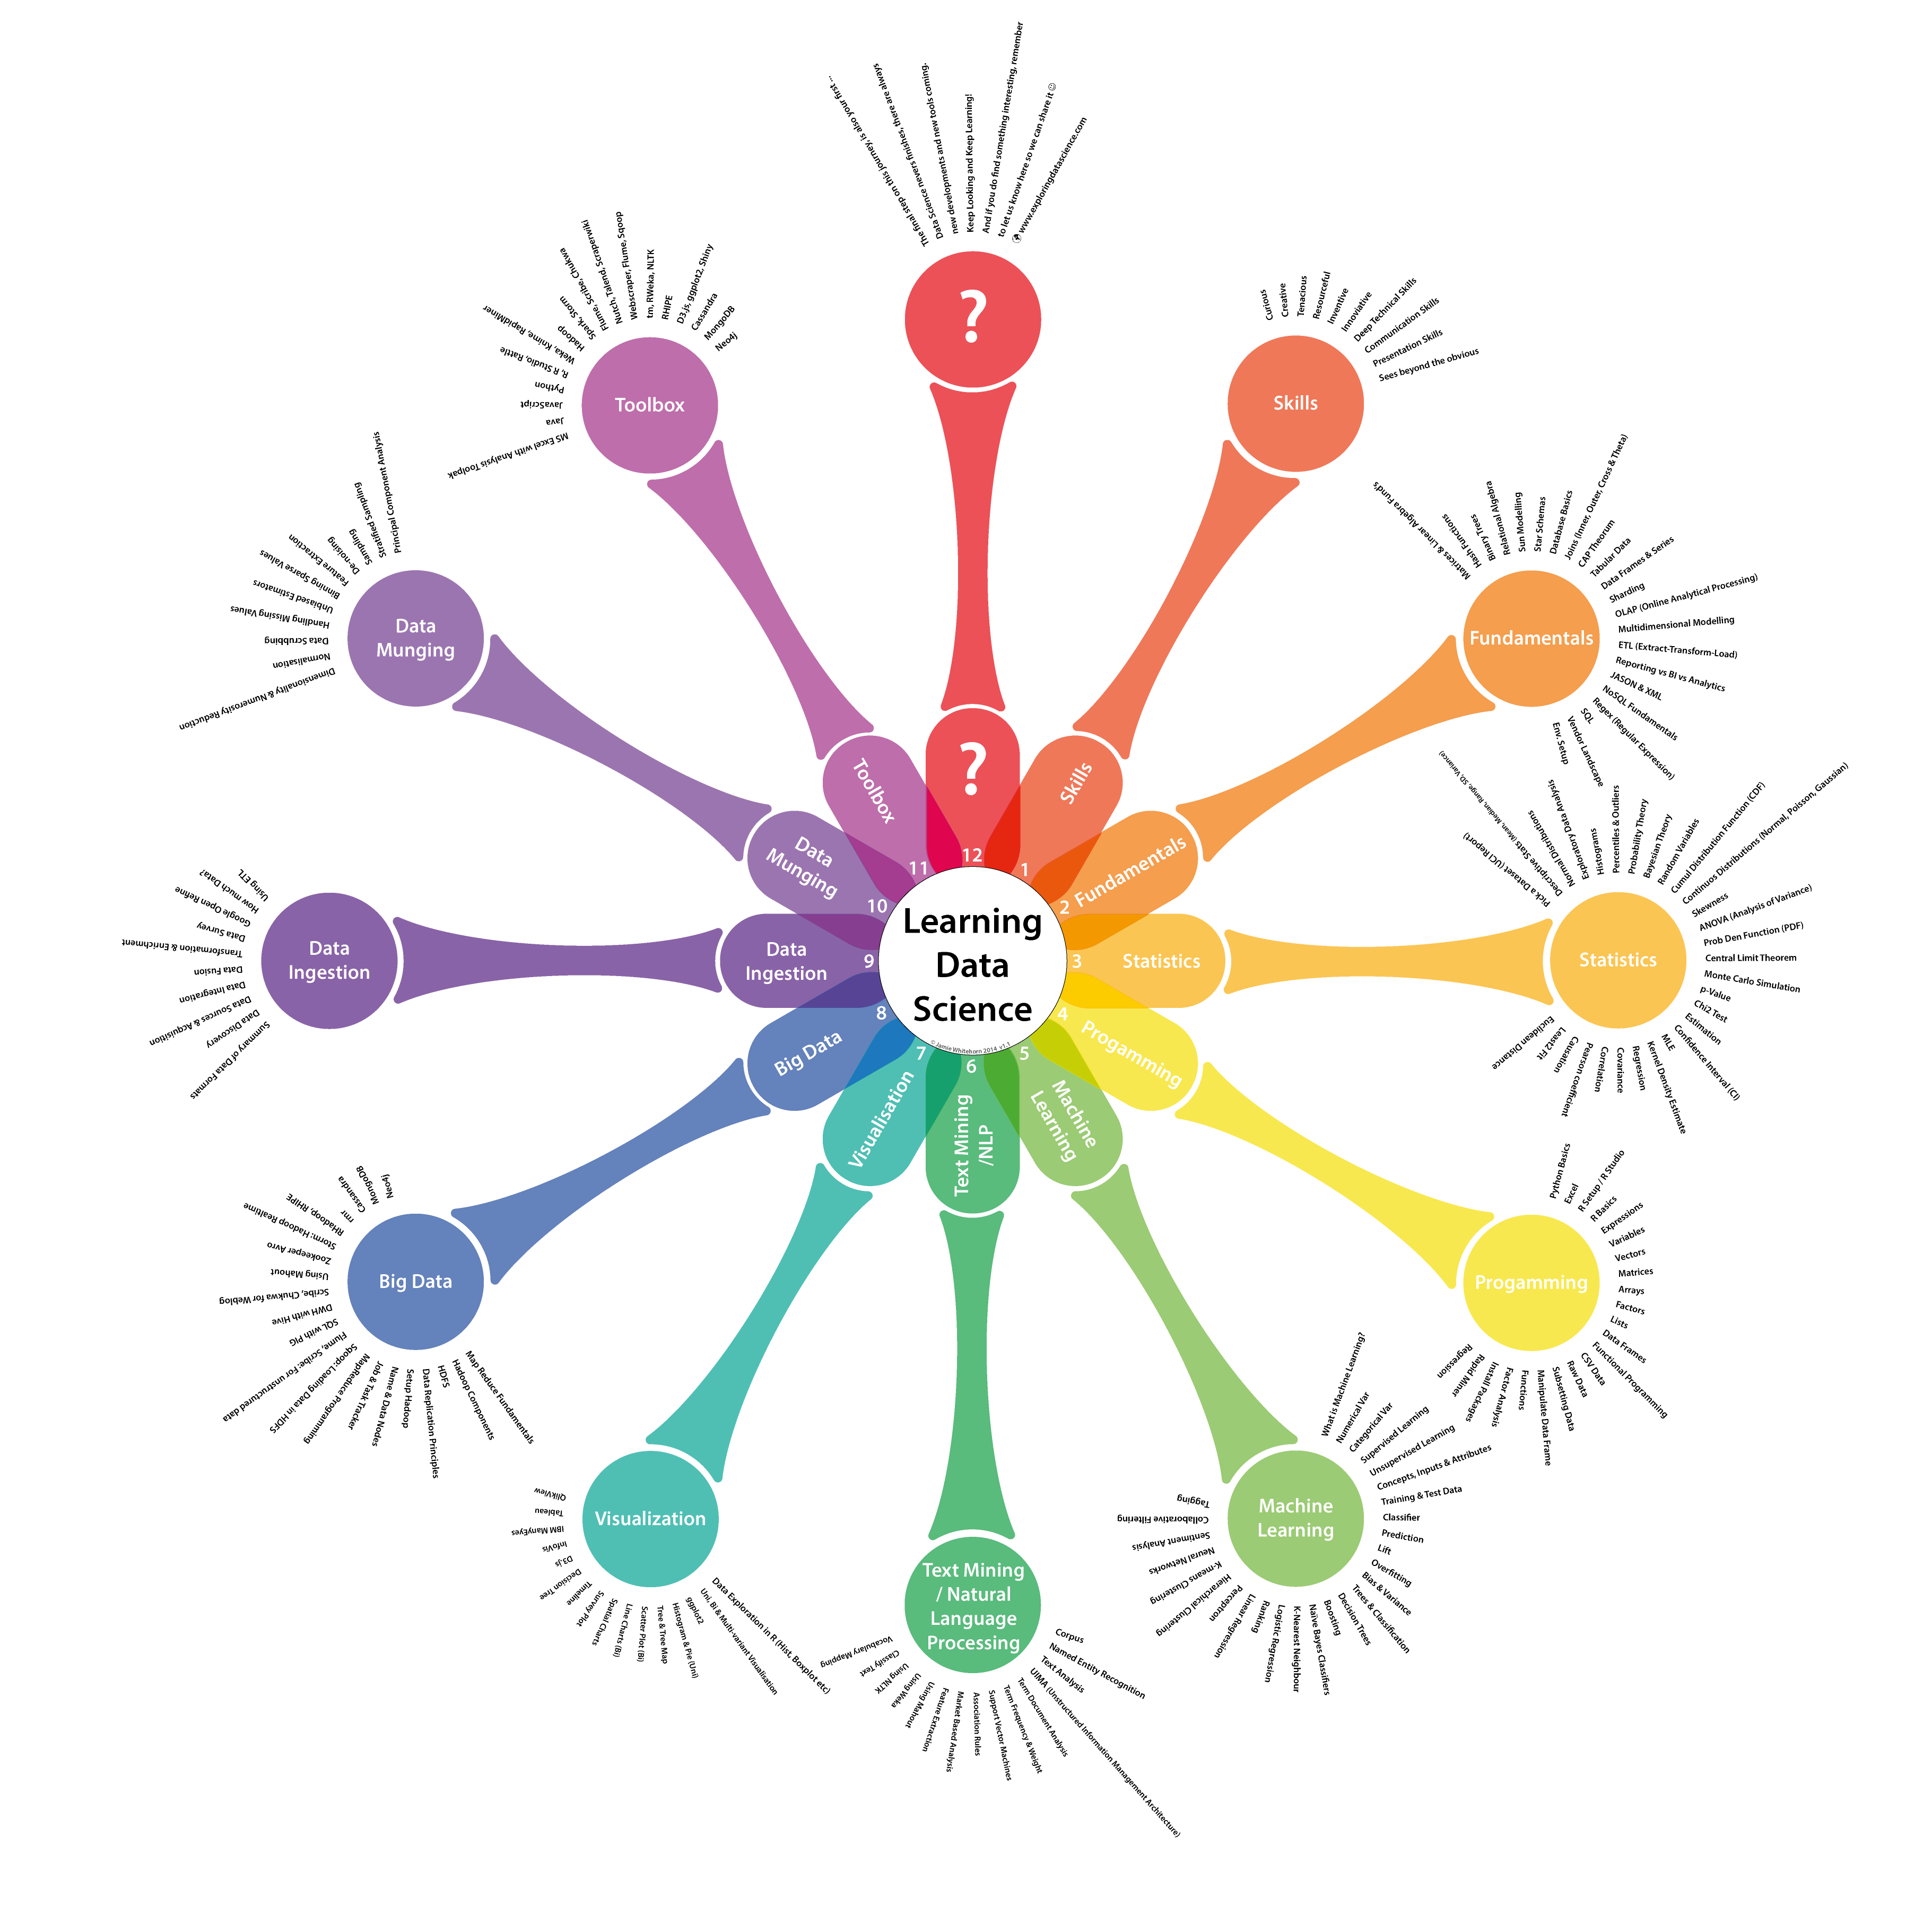 A Data Science clock showing all the concepts a data scientist should be well aware of. Courtesy: http://www.exploringdatascience.com/the-data-science-clock/